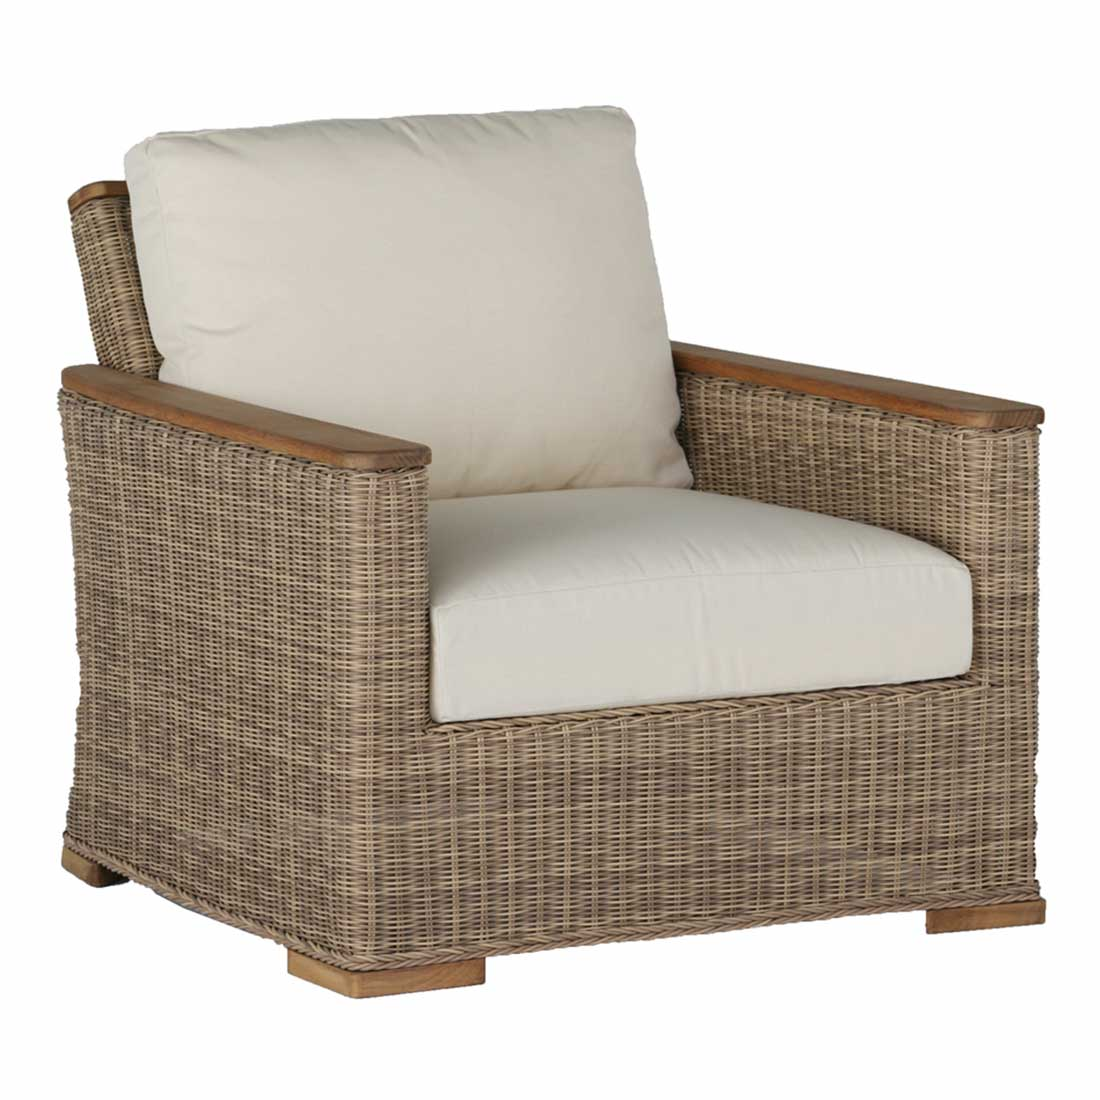 your modular manufacturers for wicker fill ideas loveseat fu patio outdoor bar hidden of sonoma portofino with ottoman furniture outstanding stools chair